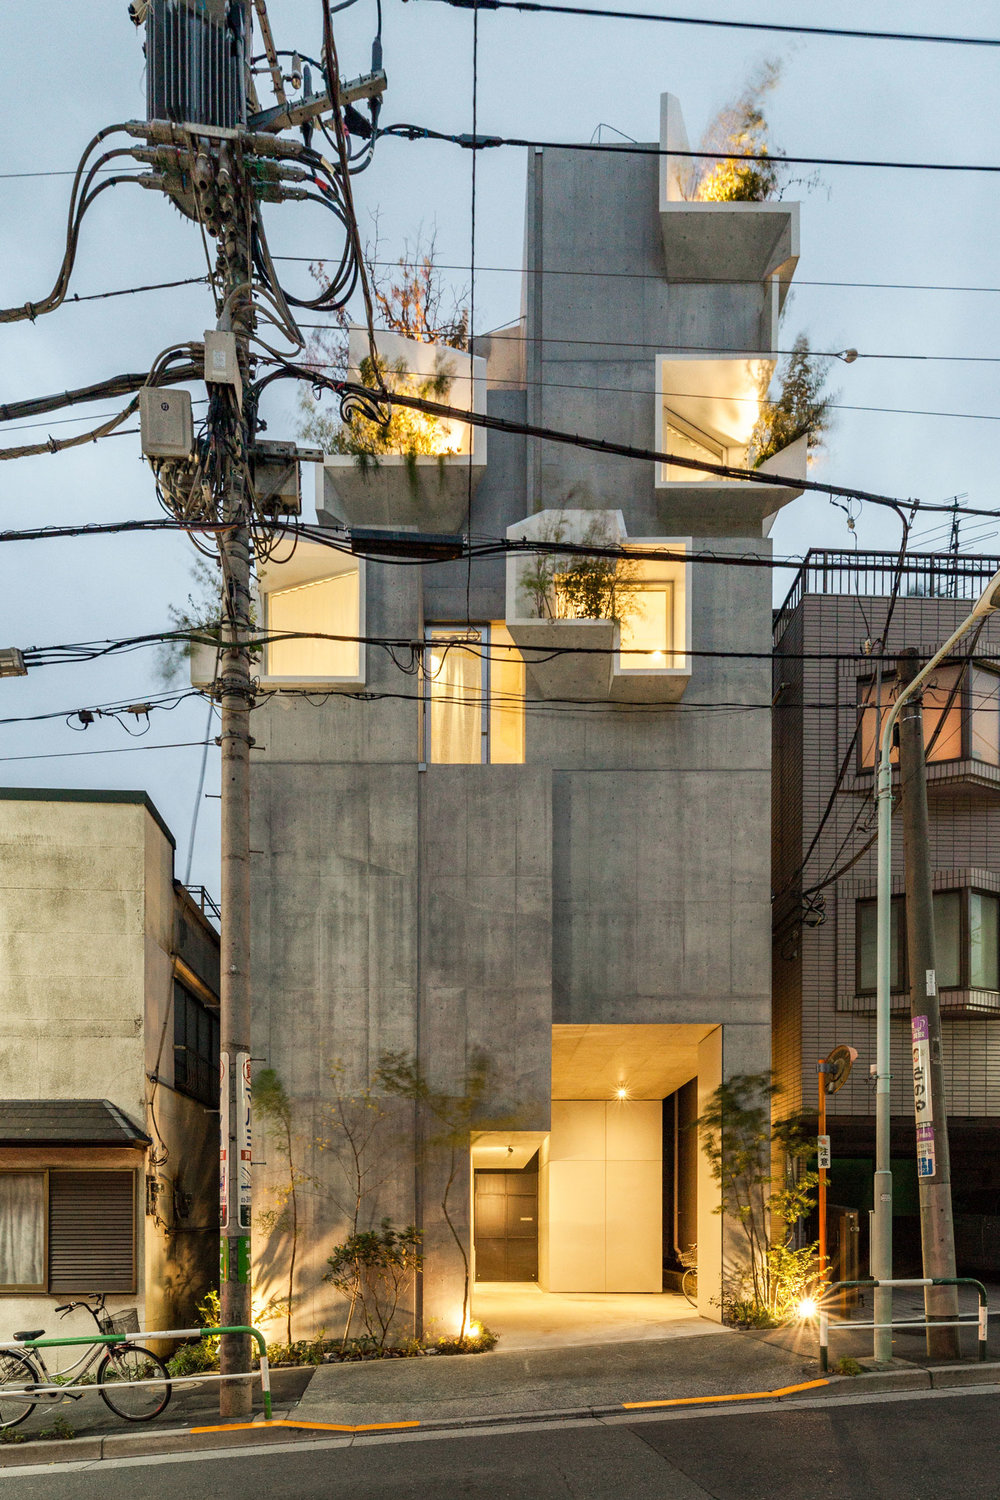 Tree-ness-House-Toshima-Japan-by-Akihisa-Hirata-Yellowtrace-23.jpg